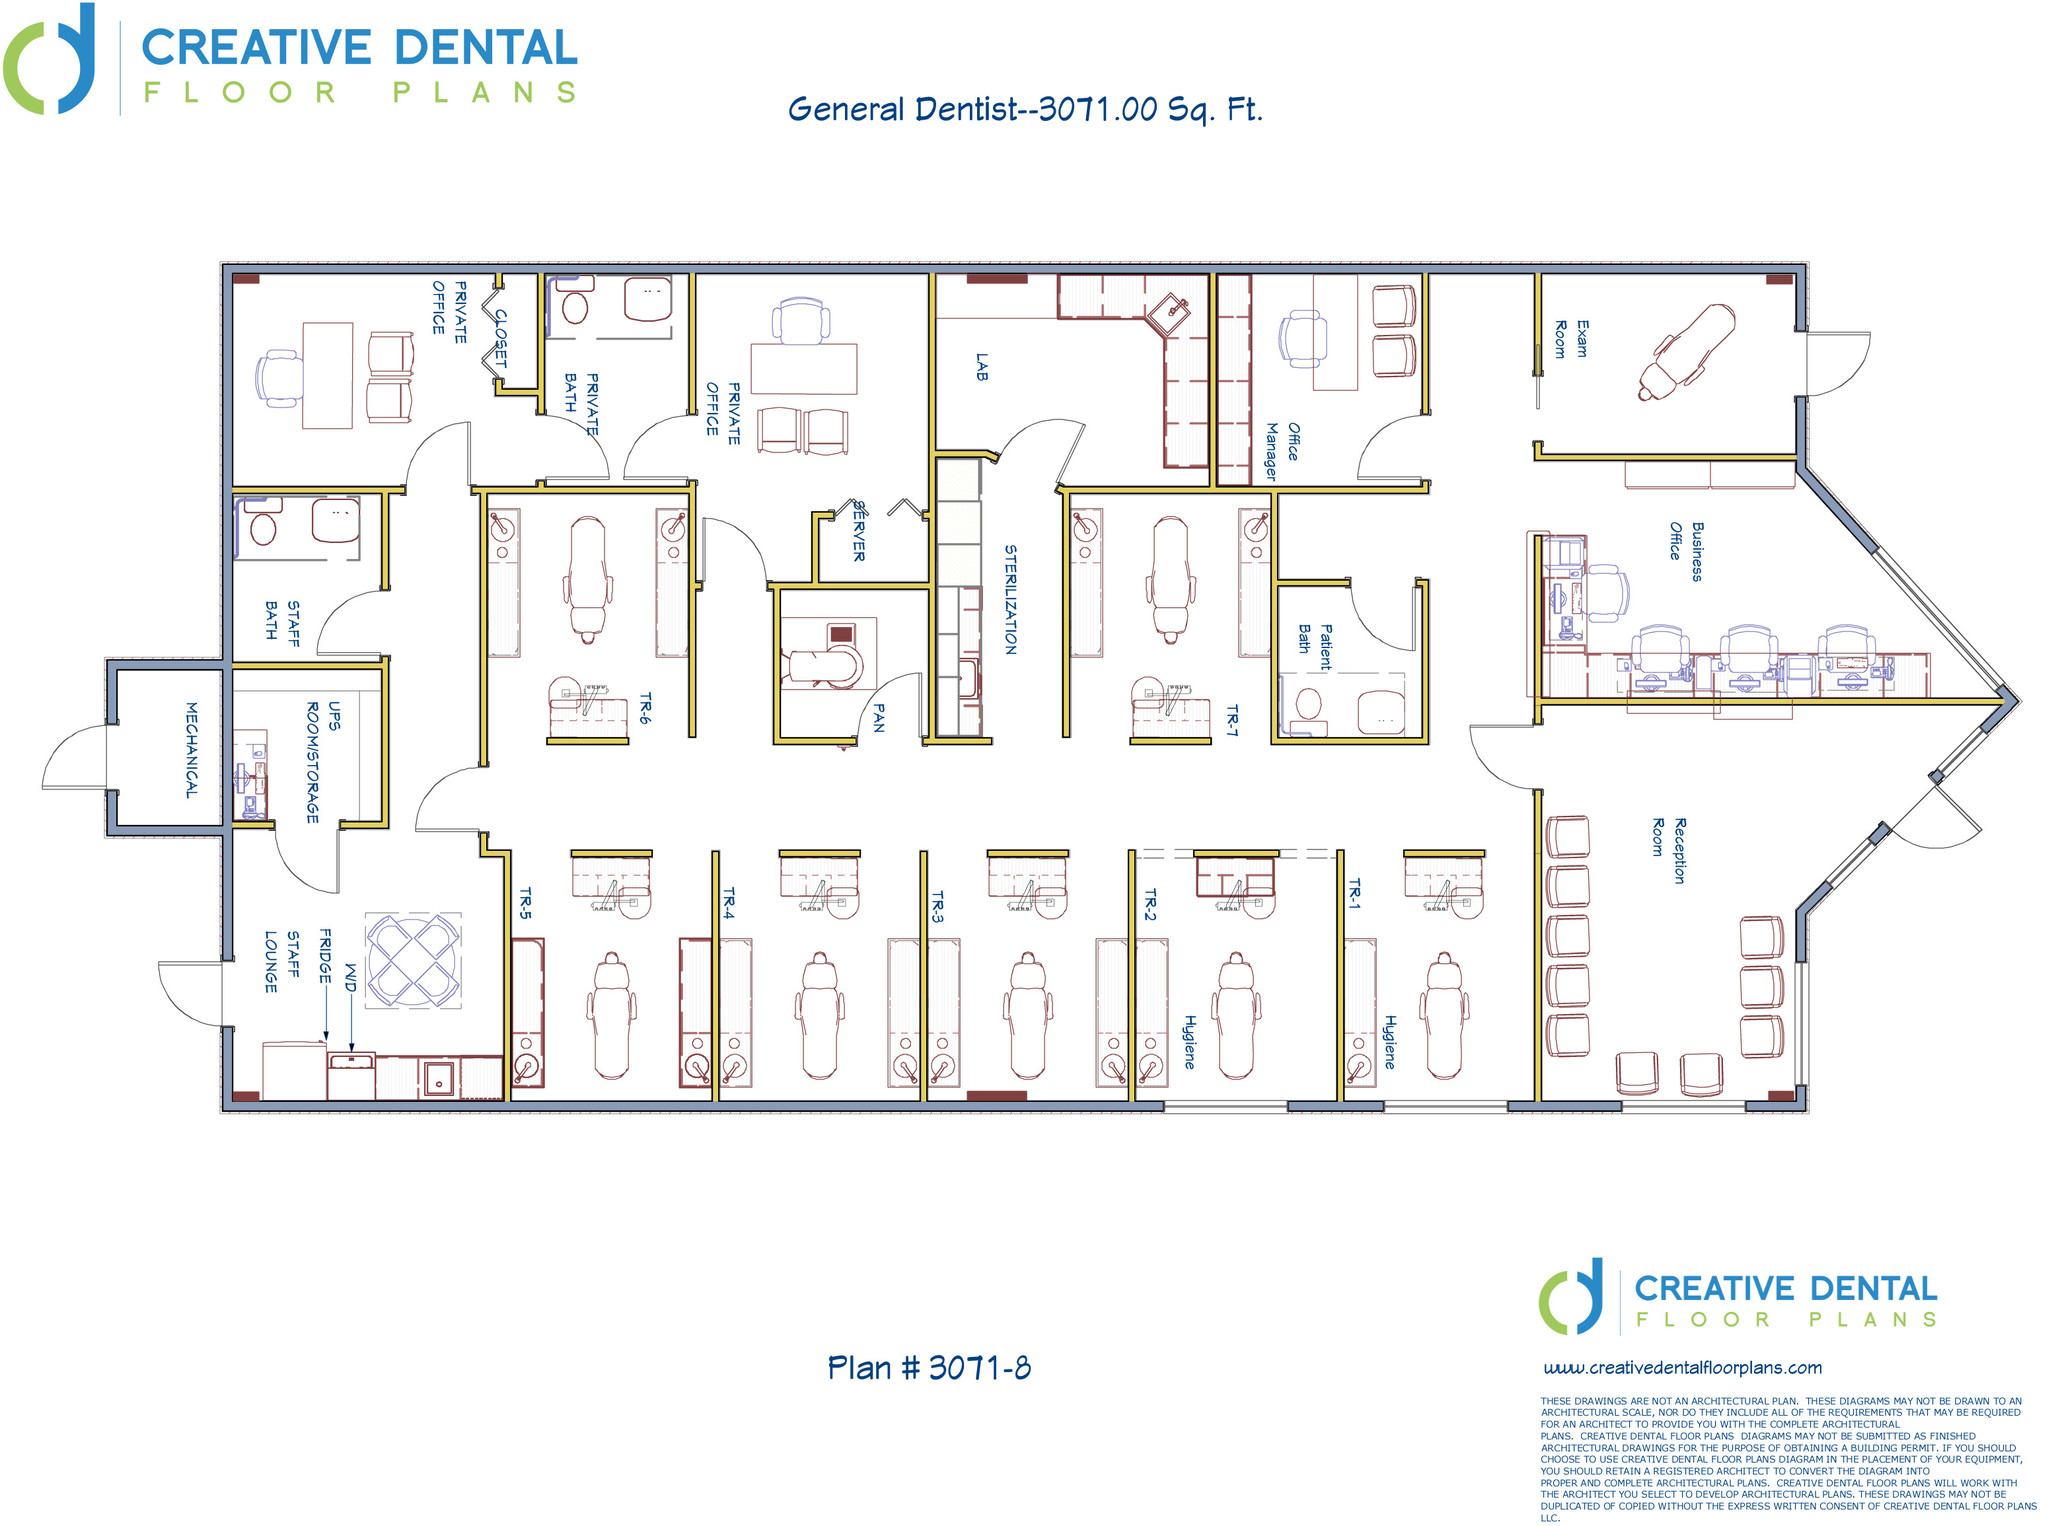 creative dental floor plans strip mall floor plans